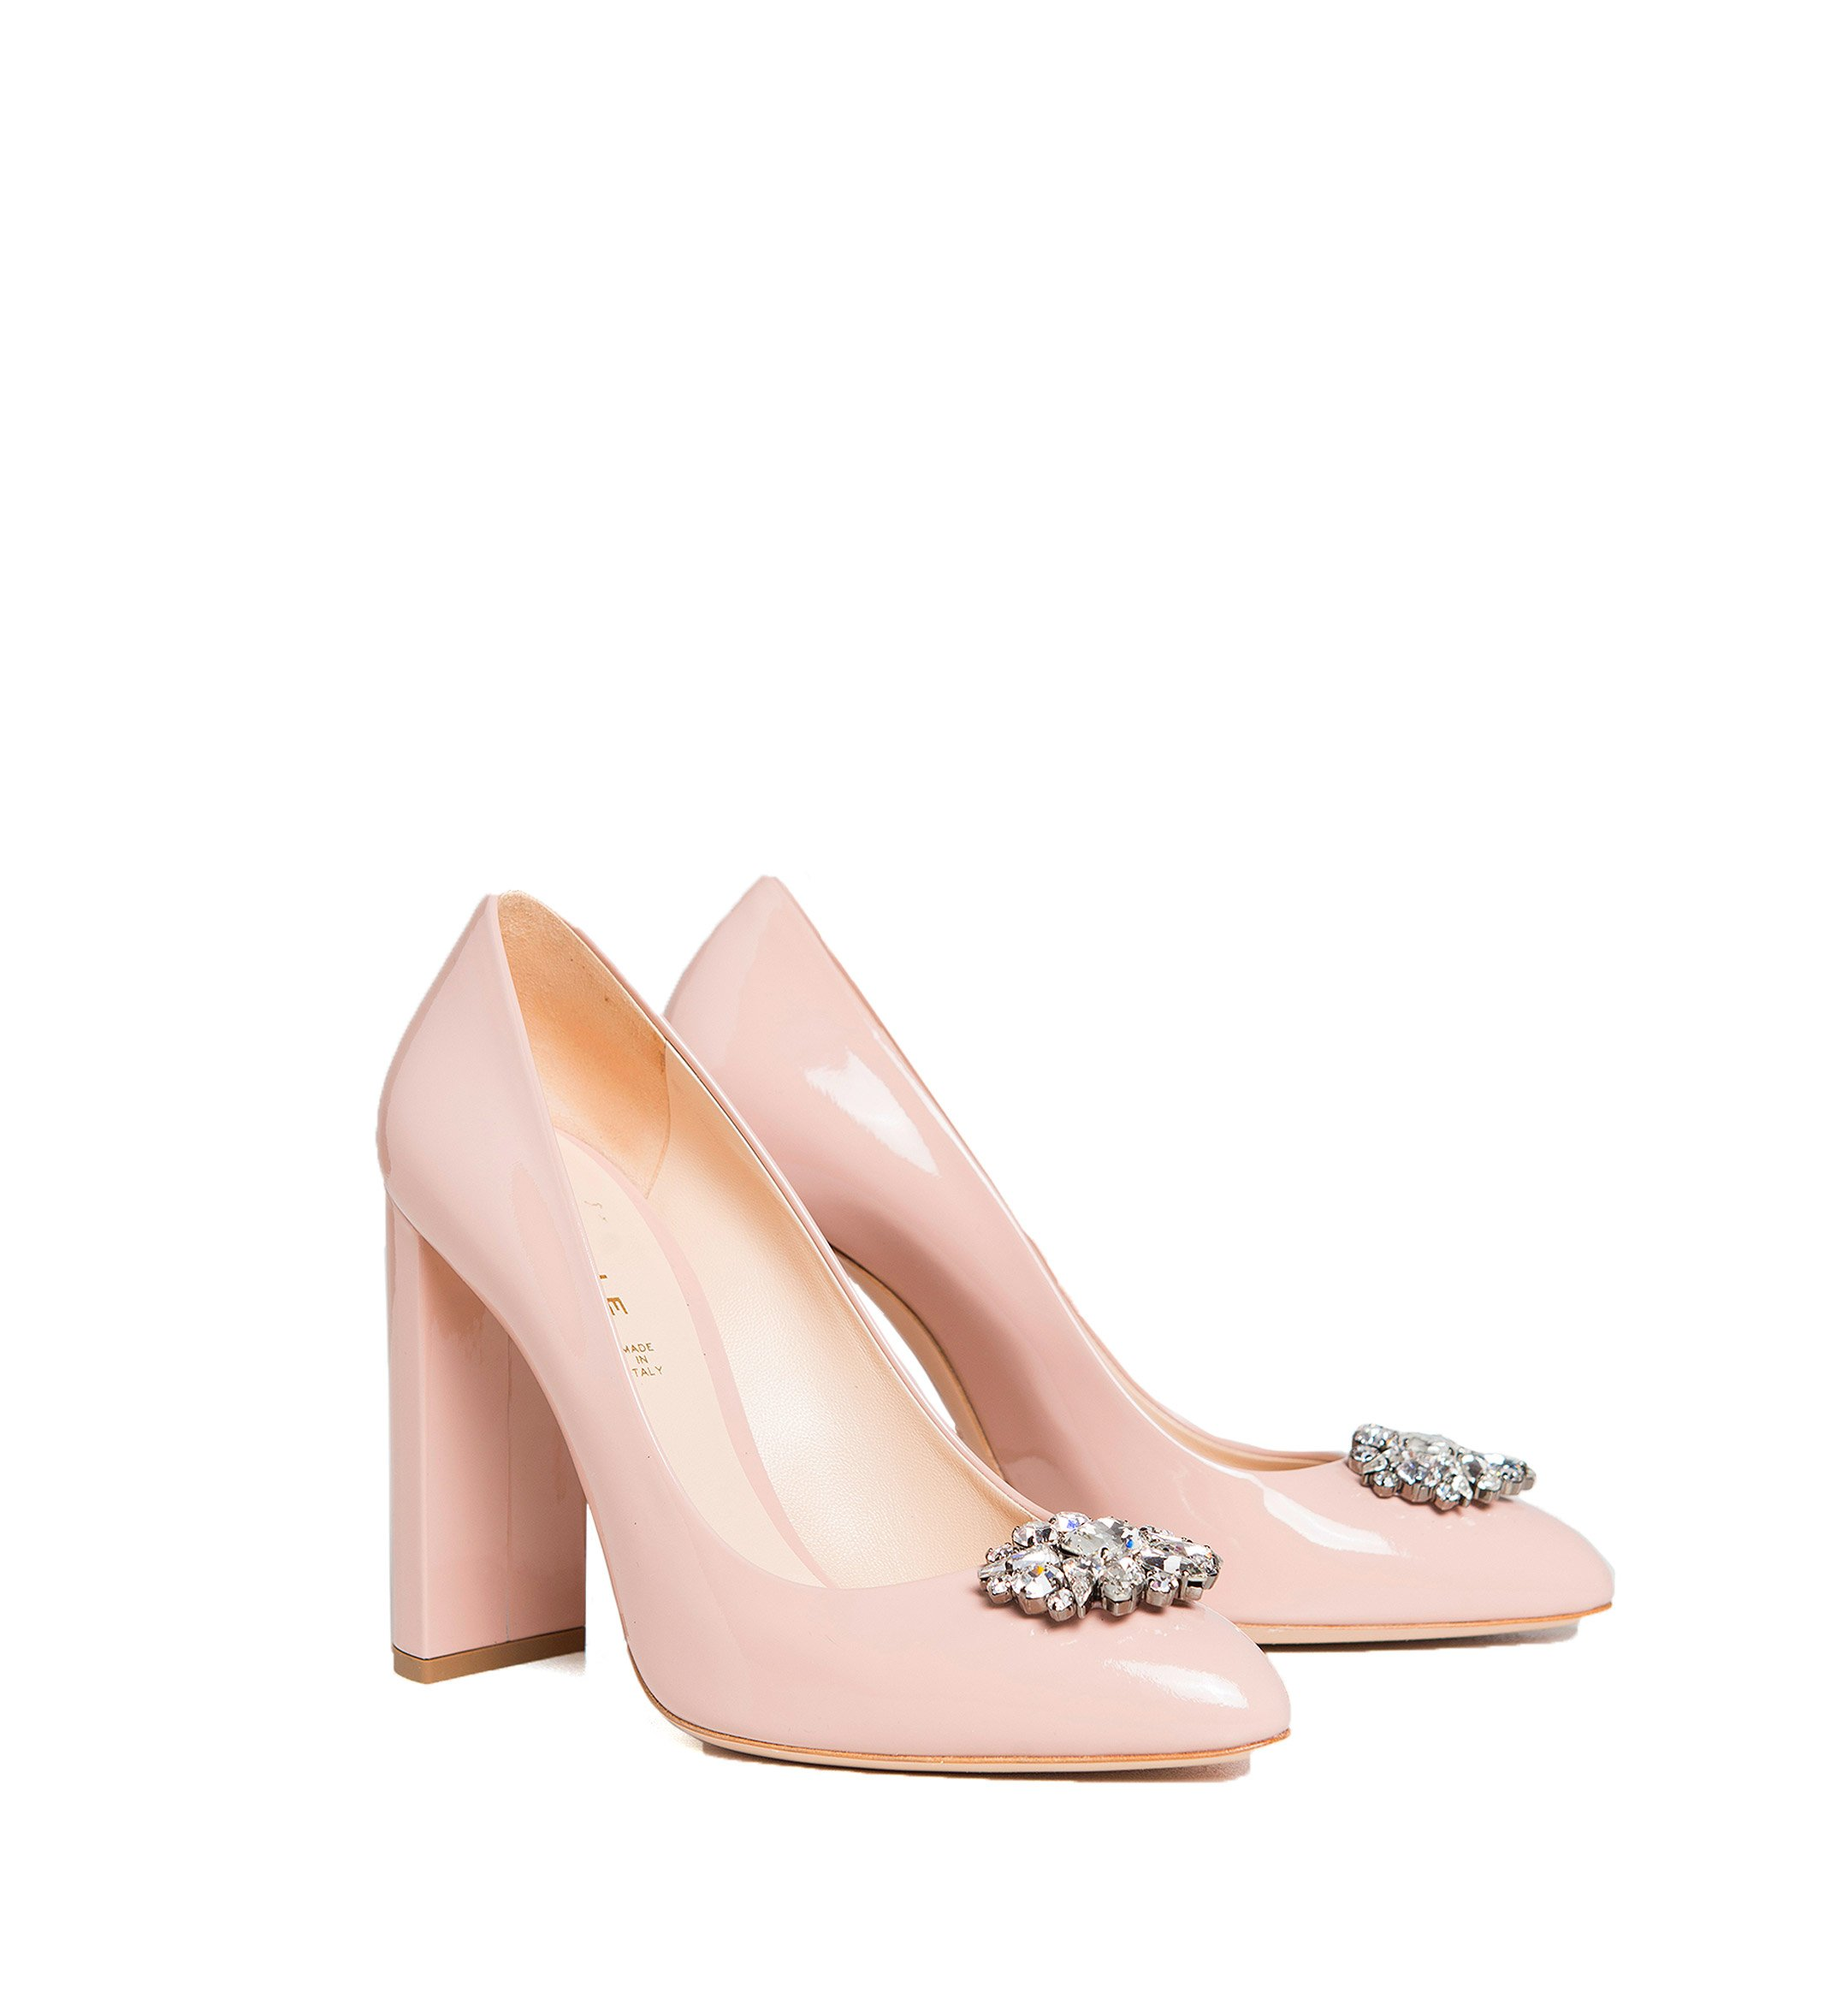 Deimille Kelly Pink Patent Leather Pumps